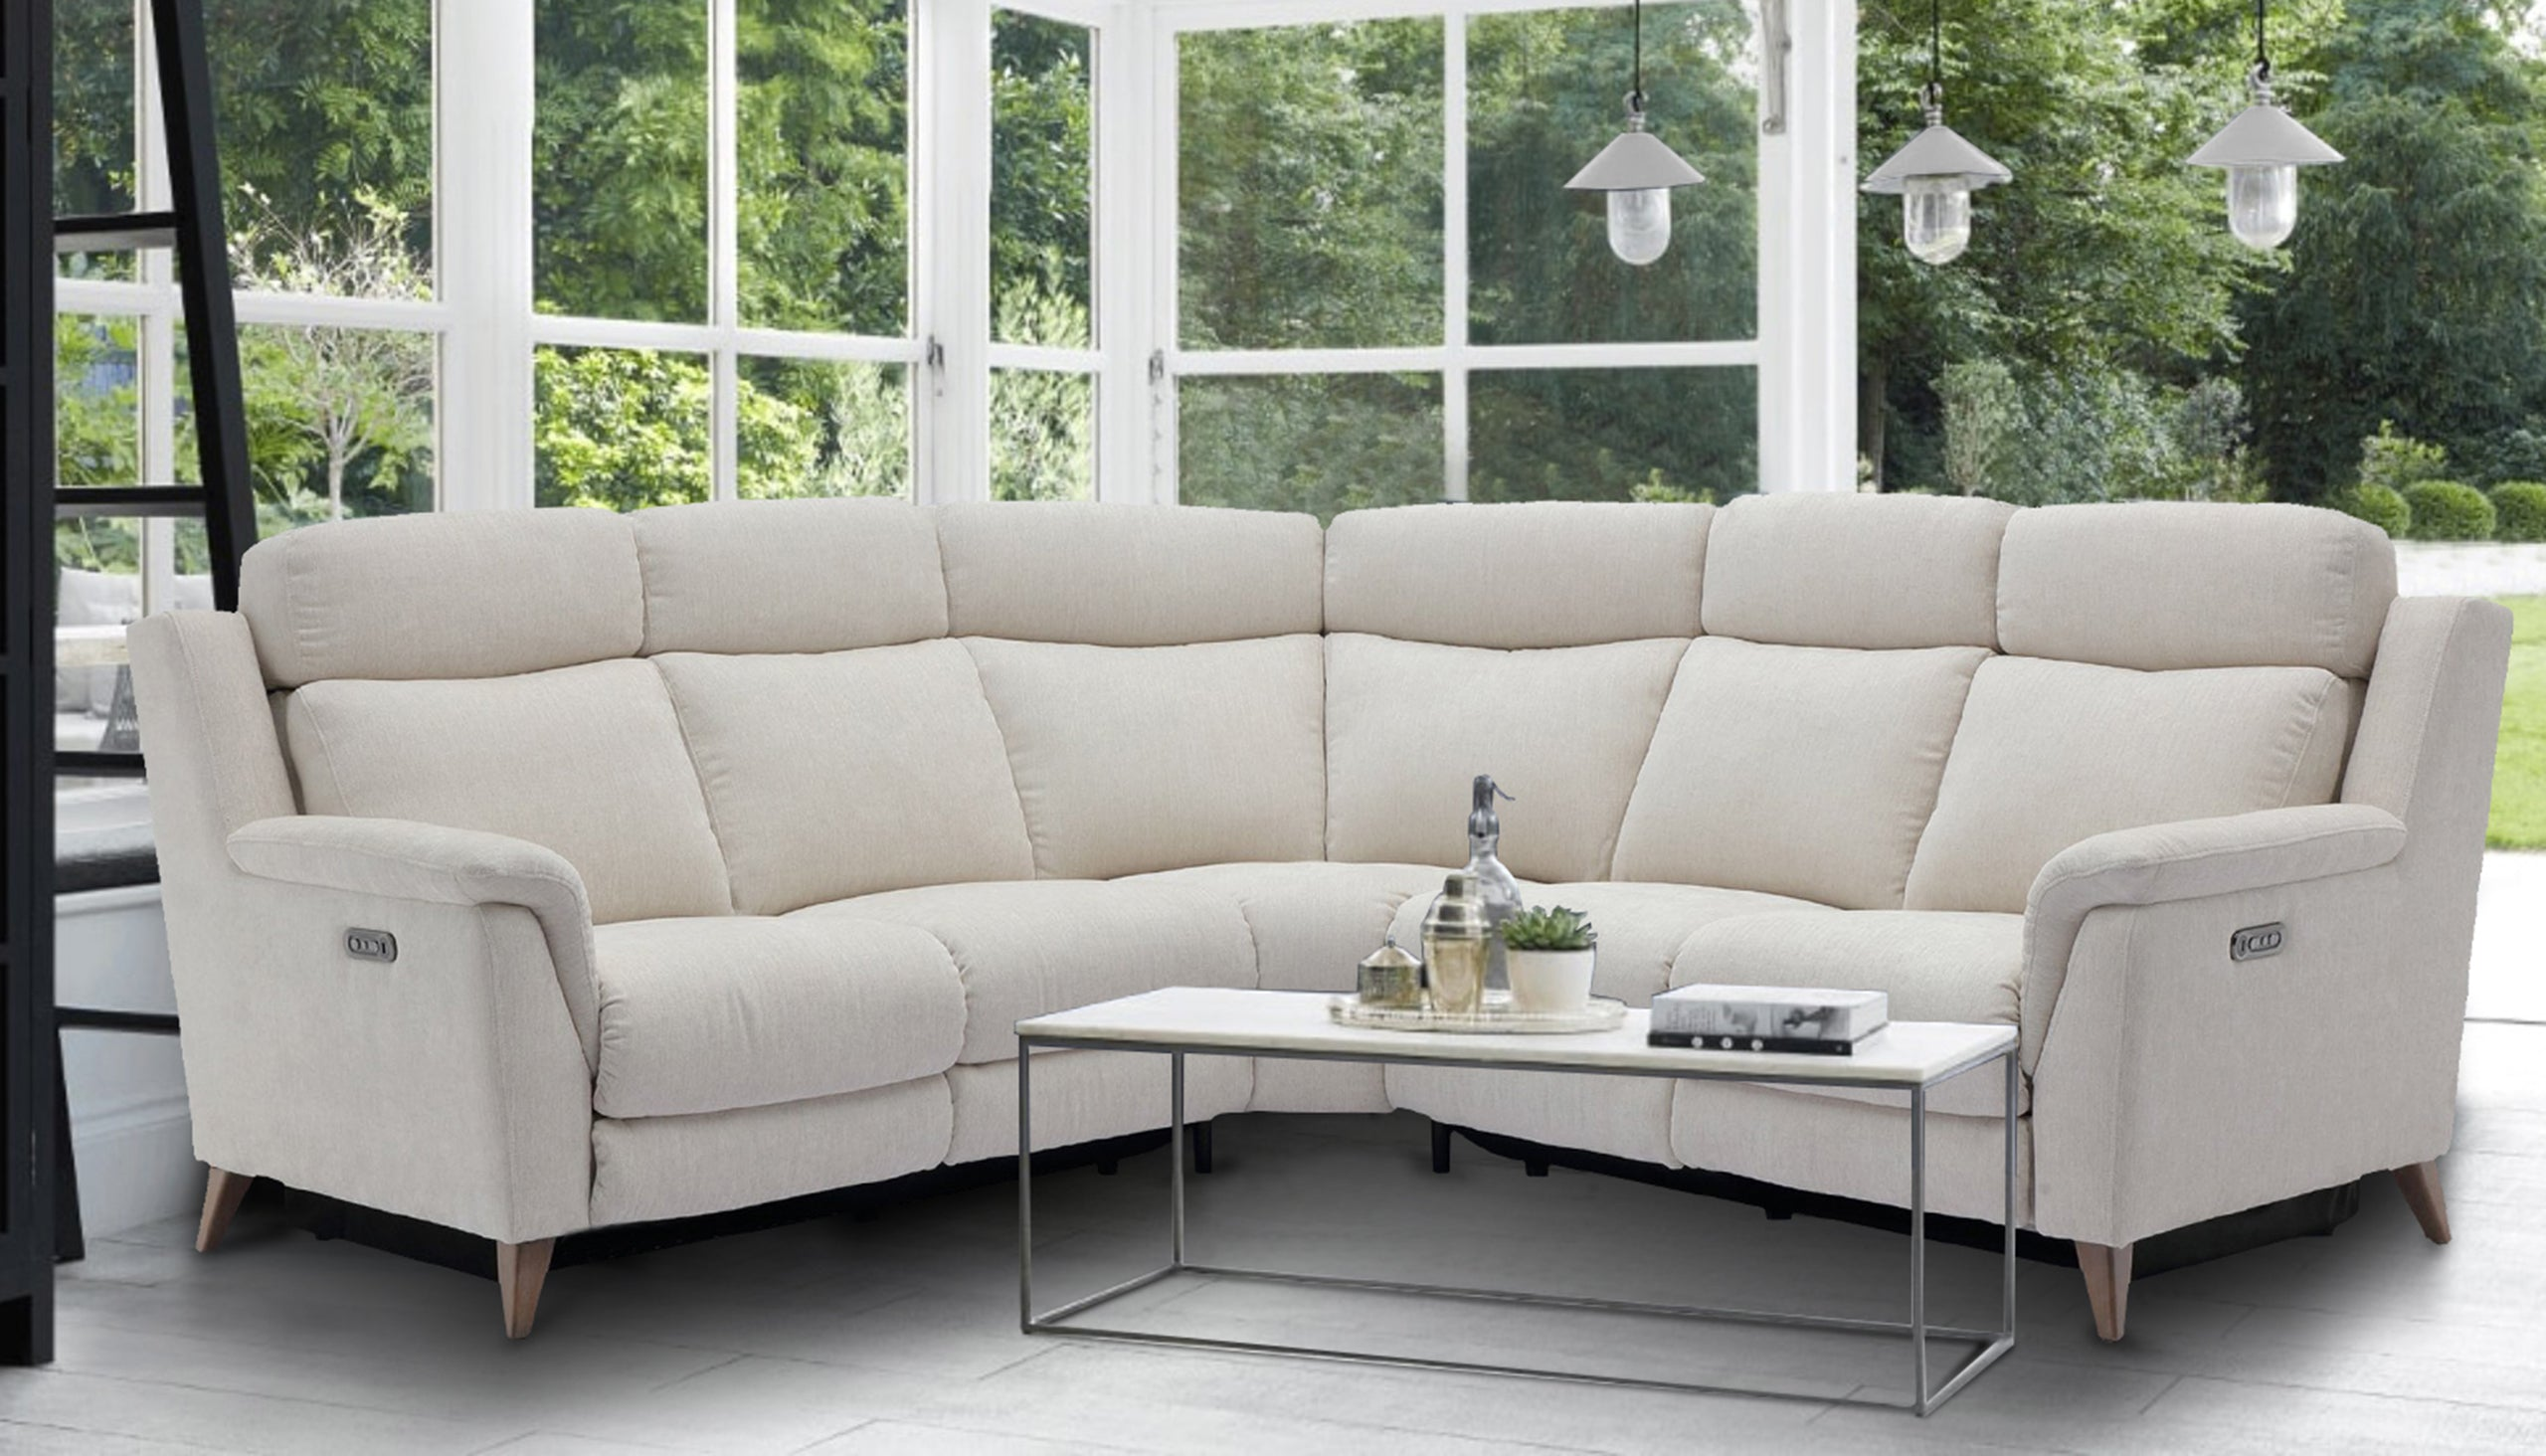 Sienna Large Double Power Recliner Corner Sofa in Fabric